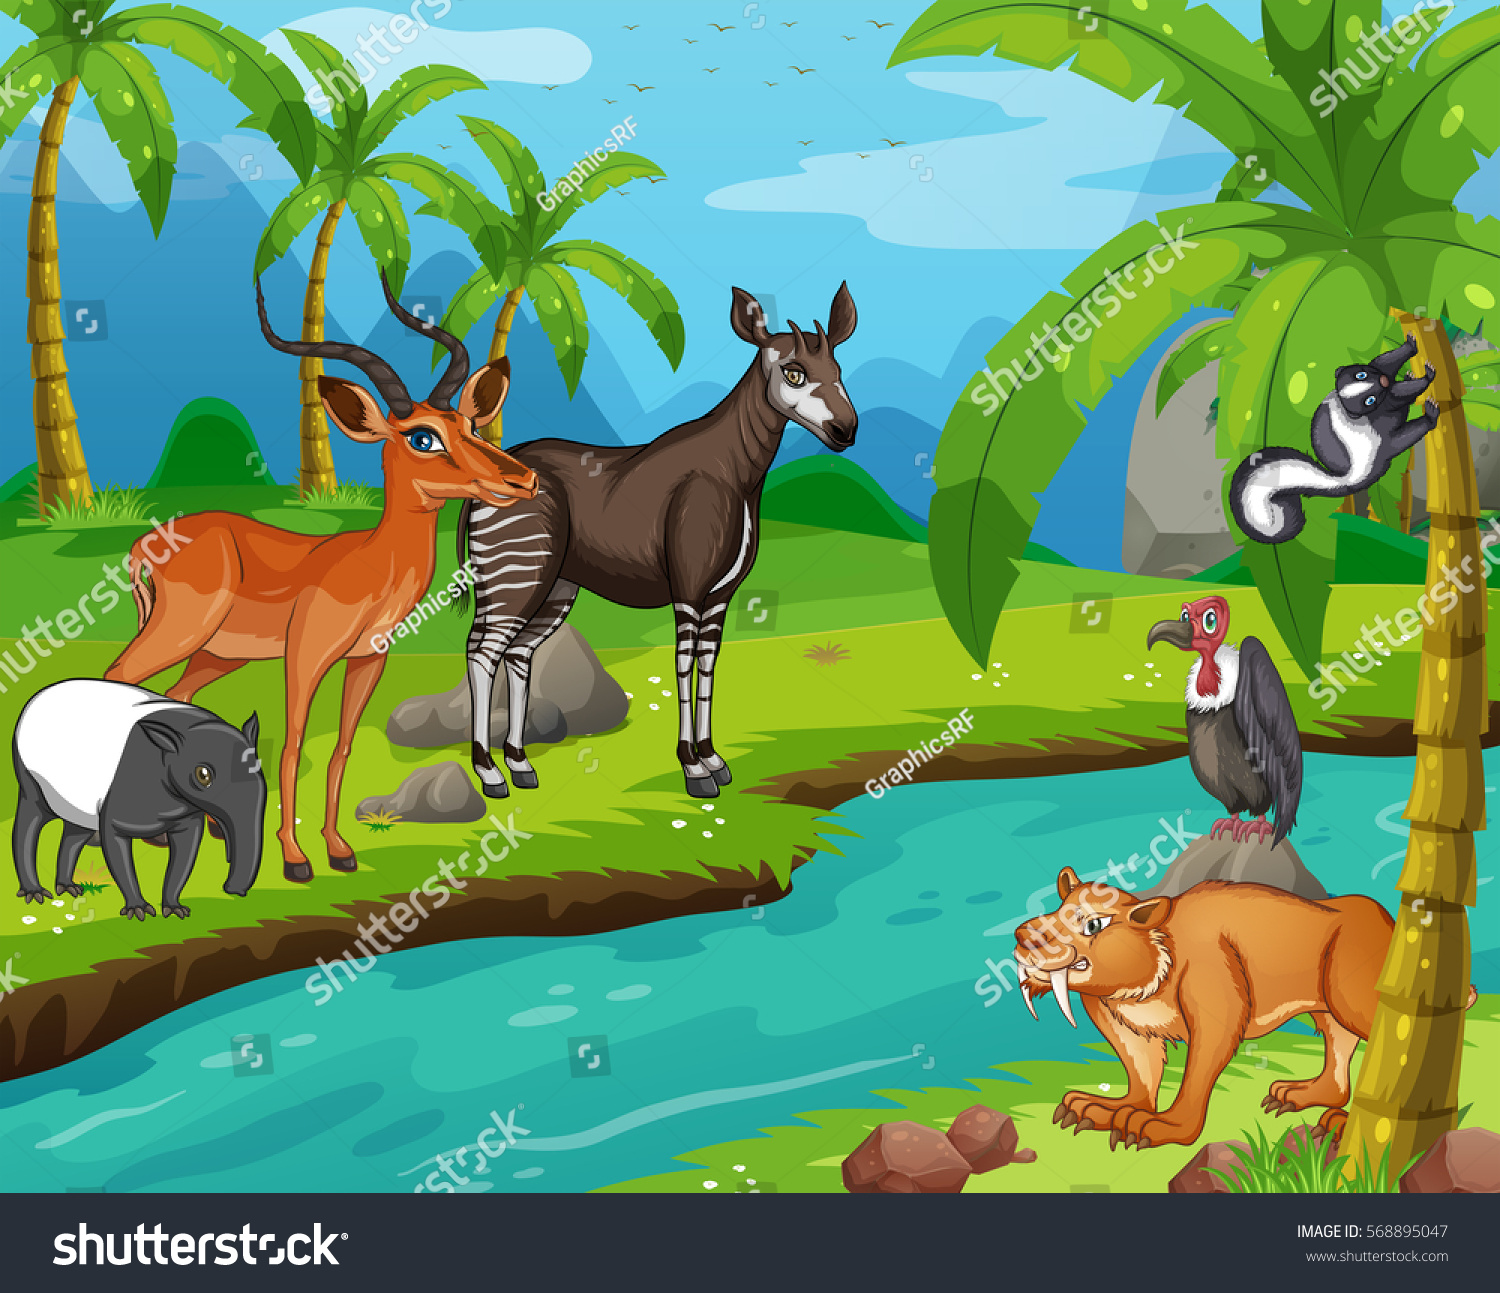 Otter Cartoon 6151*5024 transprent Png Free Download - Wildlife, Whiskers,  RED Fox. - CleanPNG / KissPNG